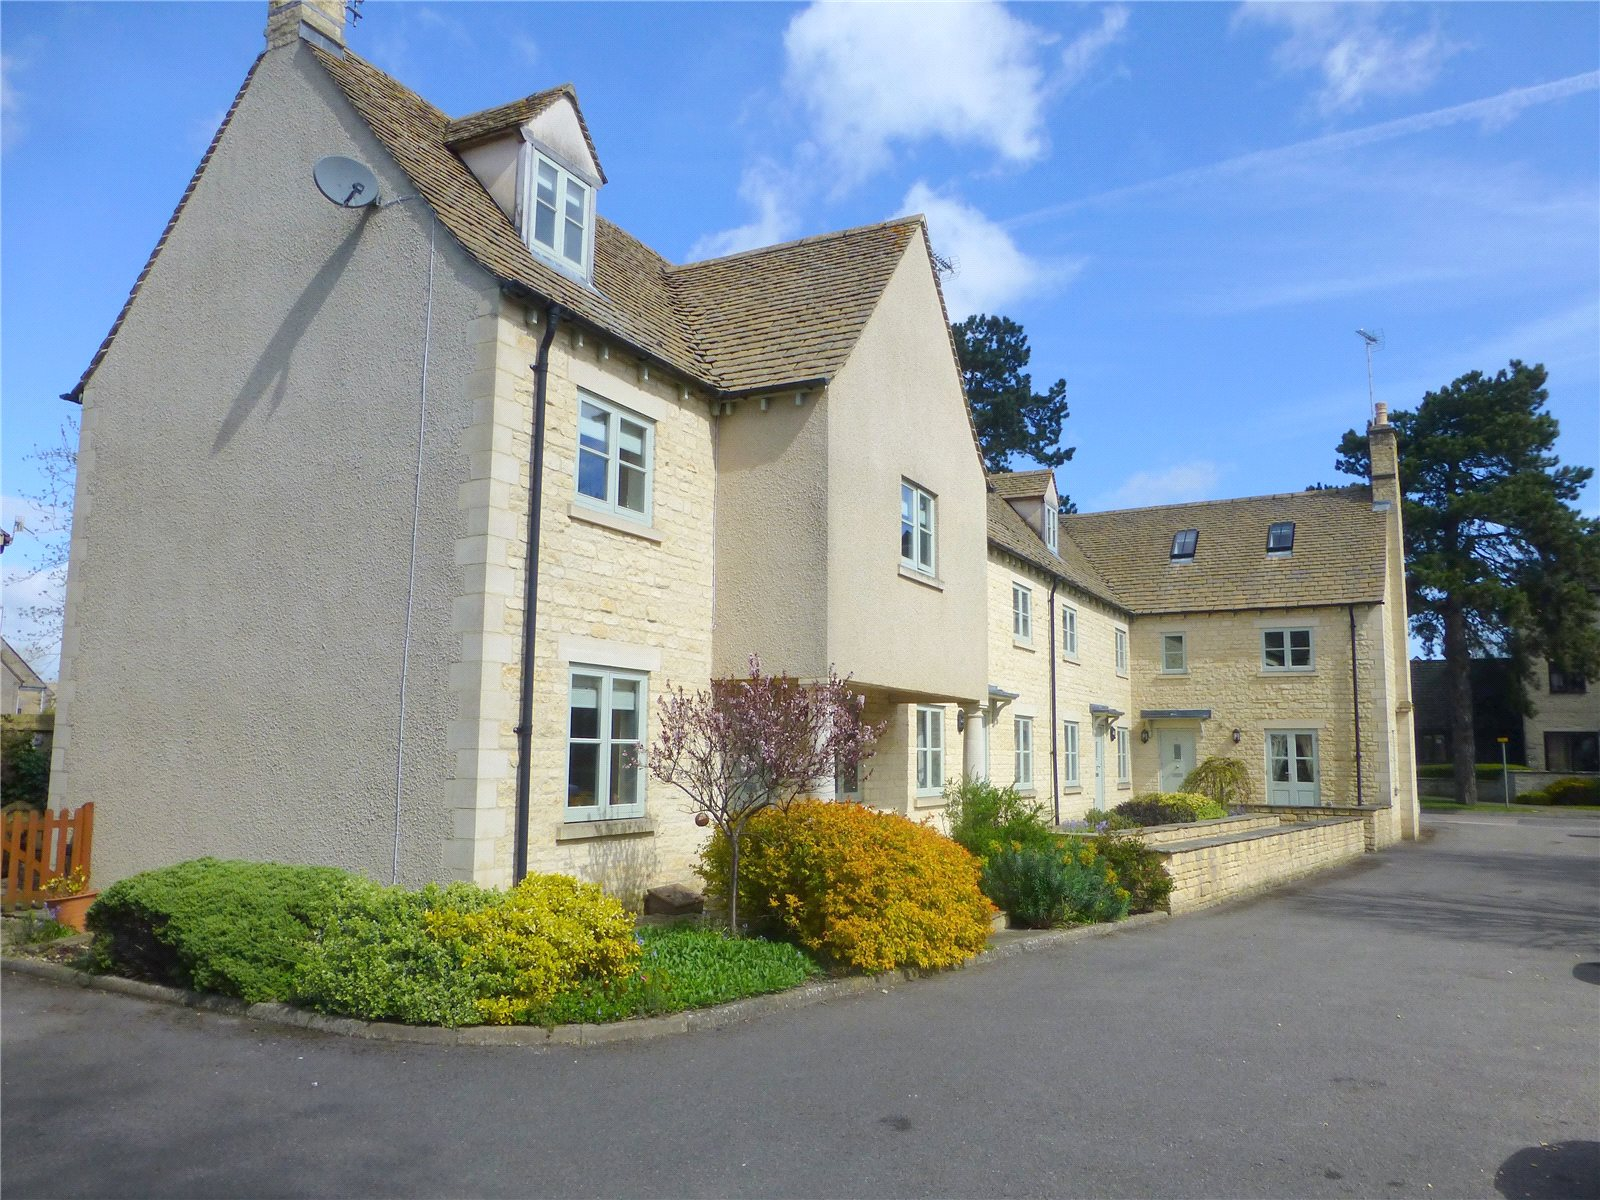 3 Bedrooms Flat for sale in Admiralty Row Cirencester Gloucestershire GL7